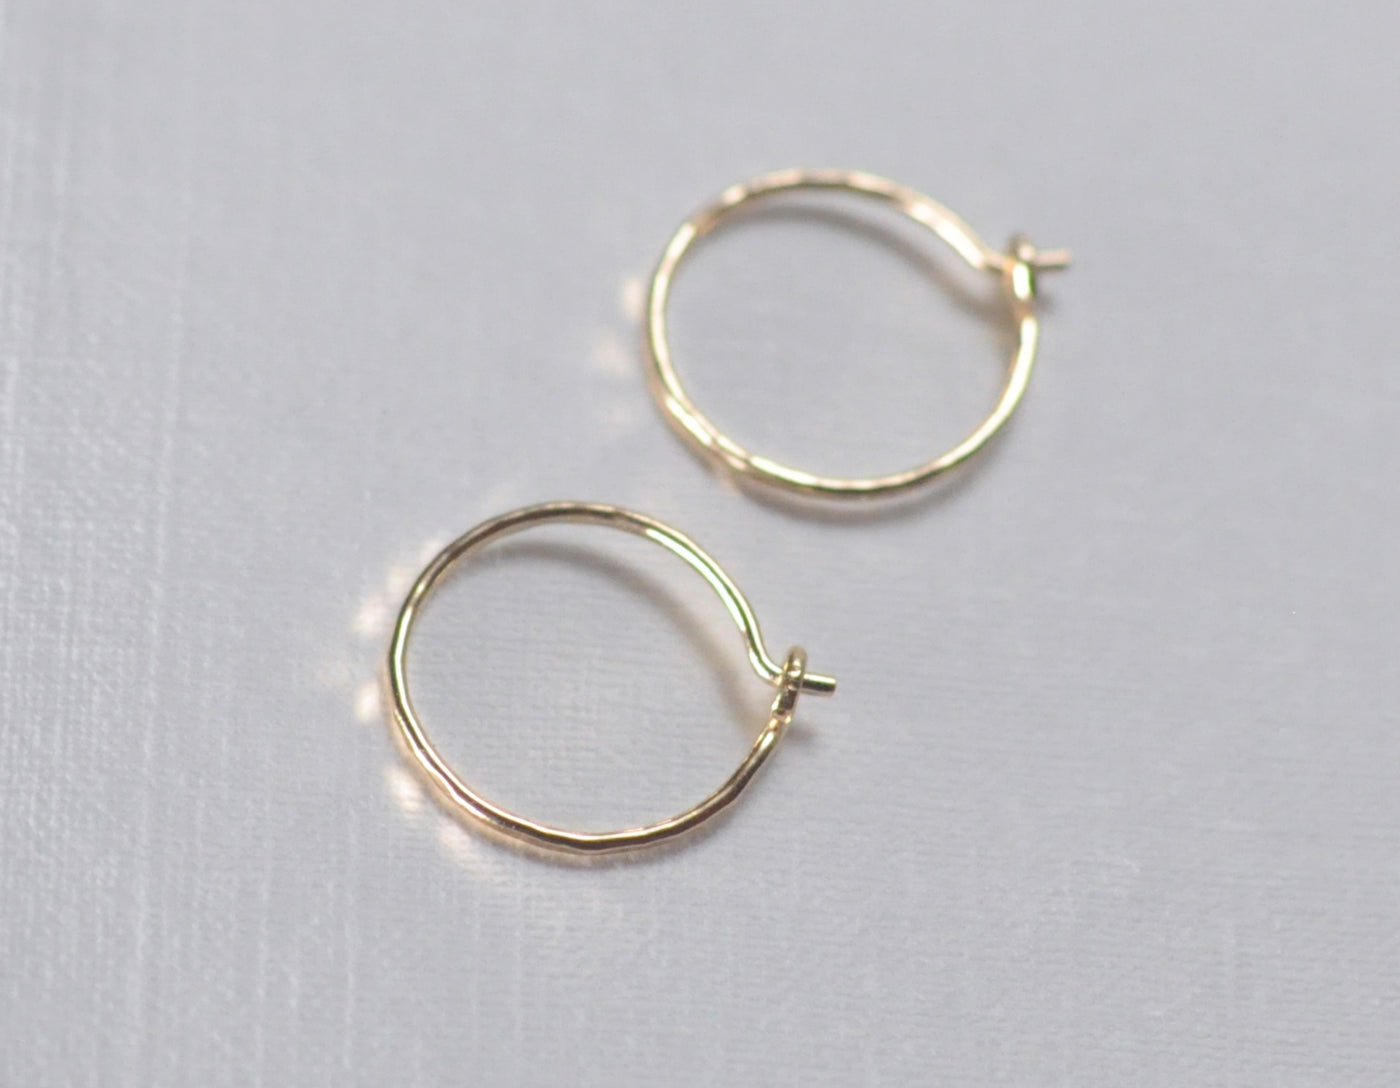 everyday earrings, delicate hoops, 15mm earrings, 14k gold earrings, karat1424